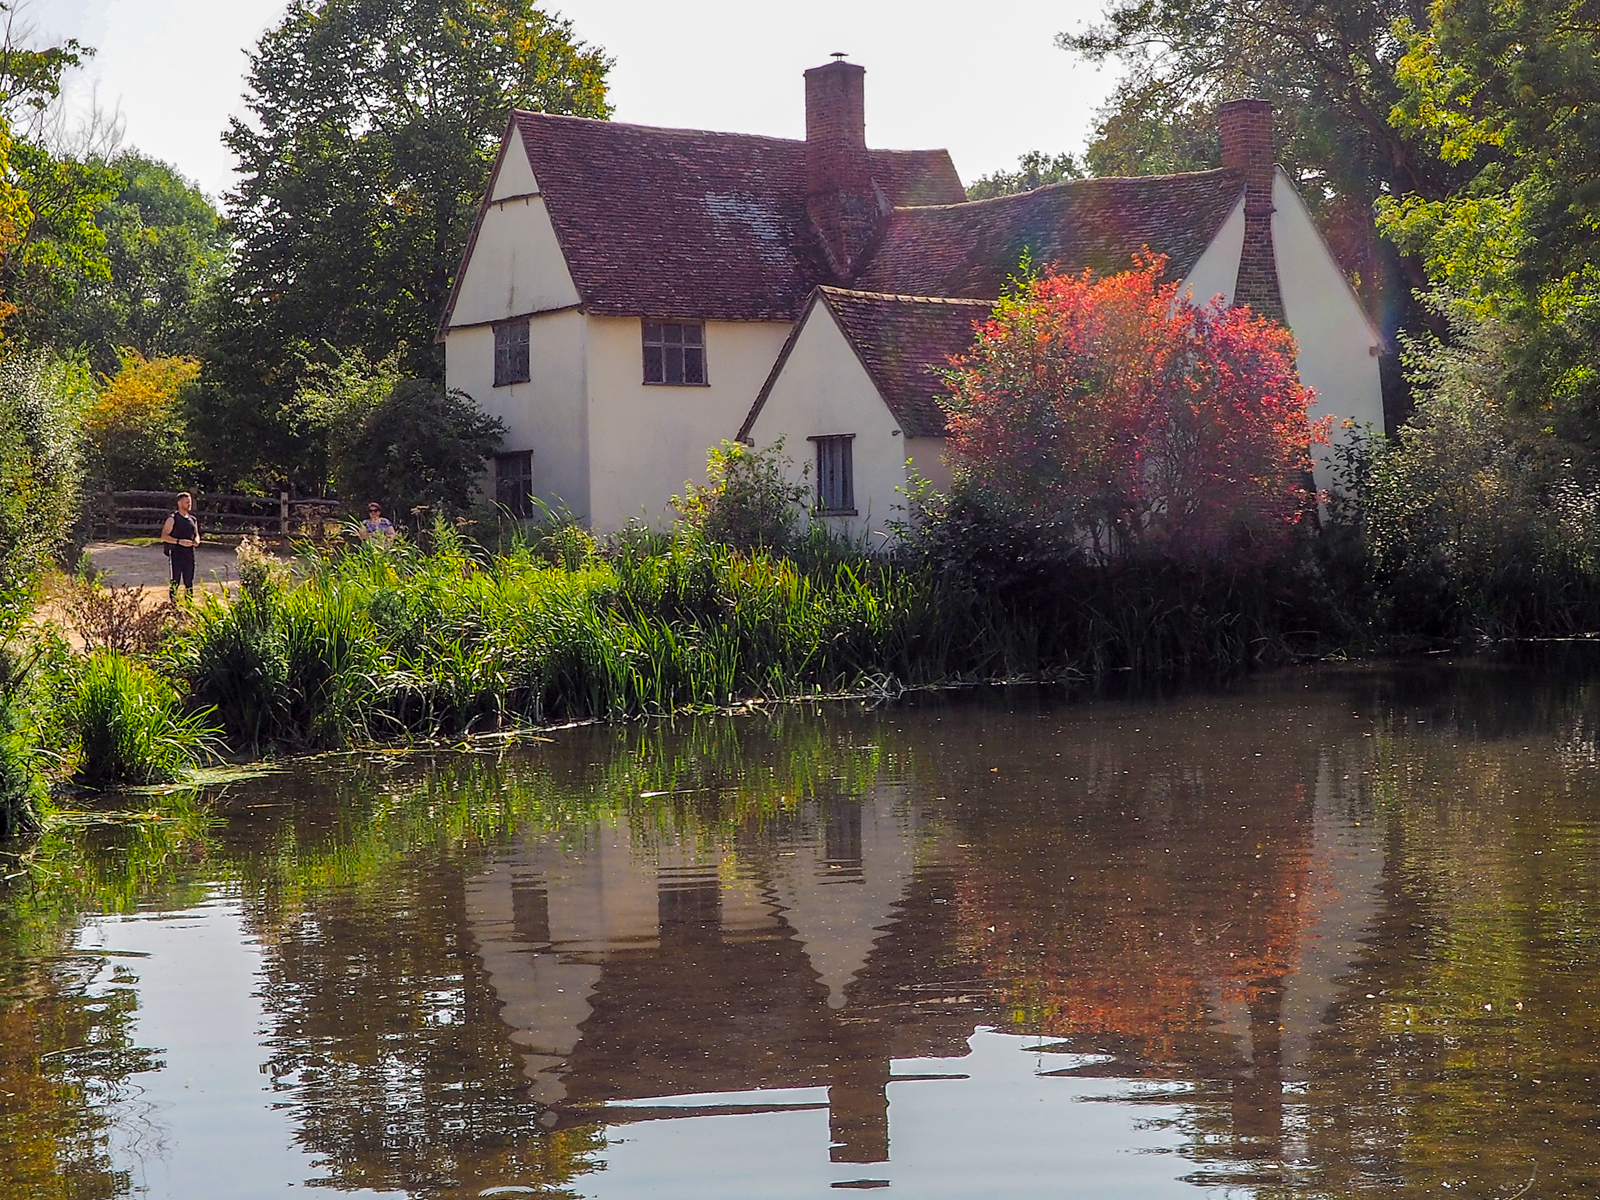 willy-lotts-house-flatford-by-laurie